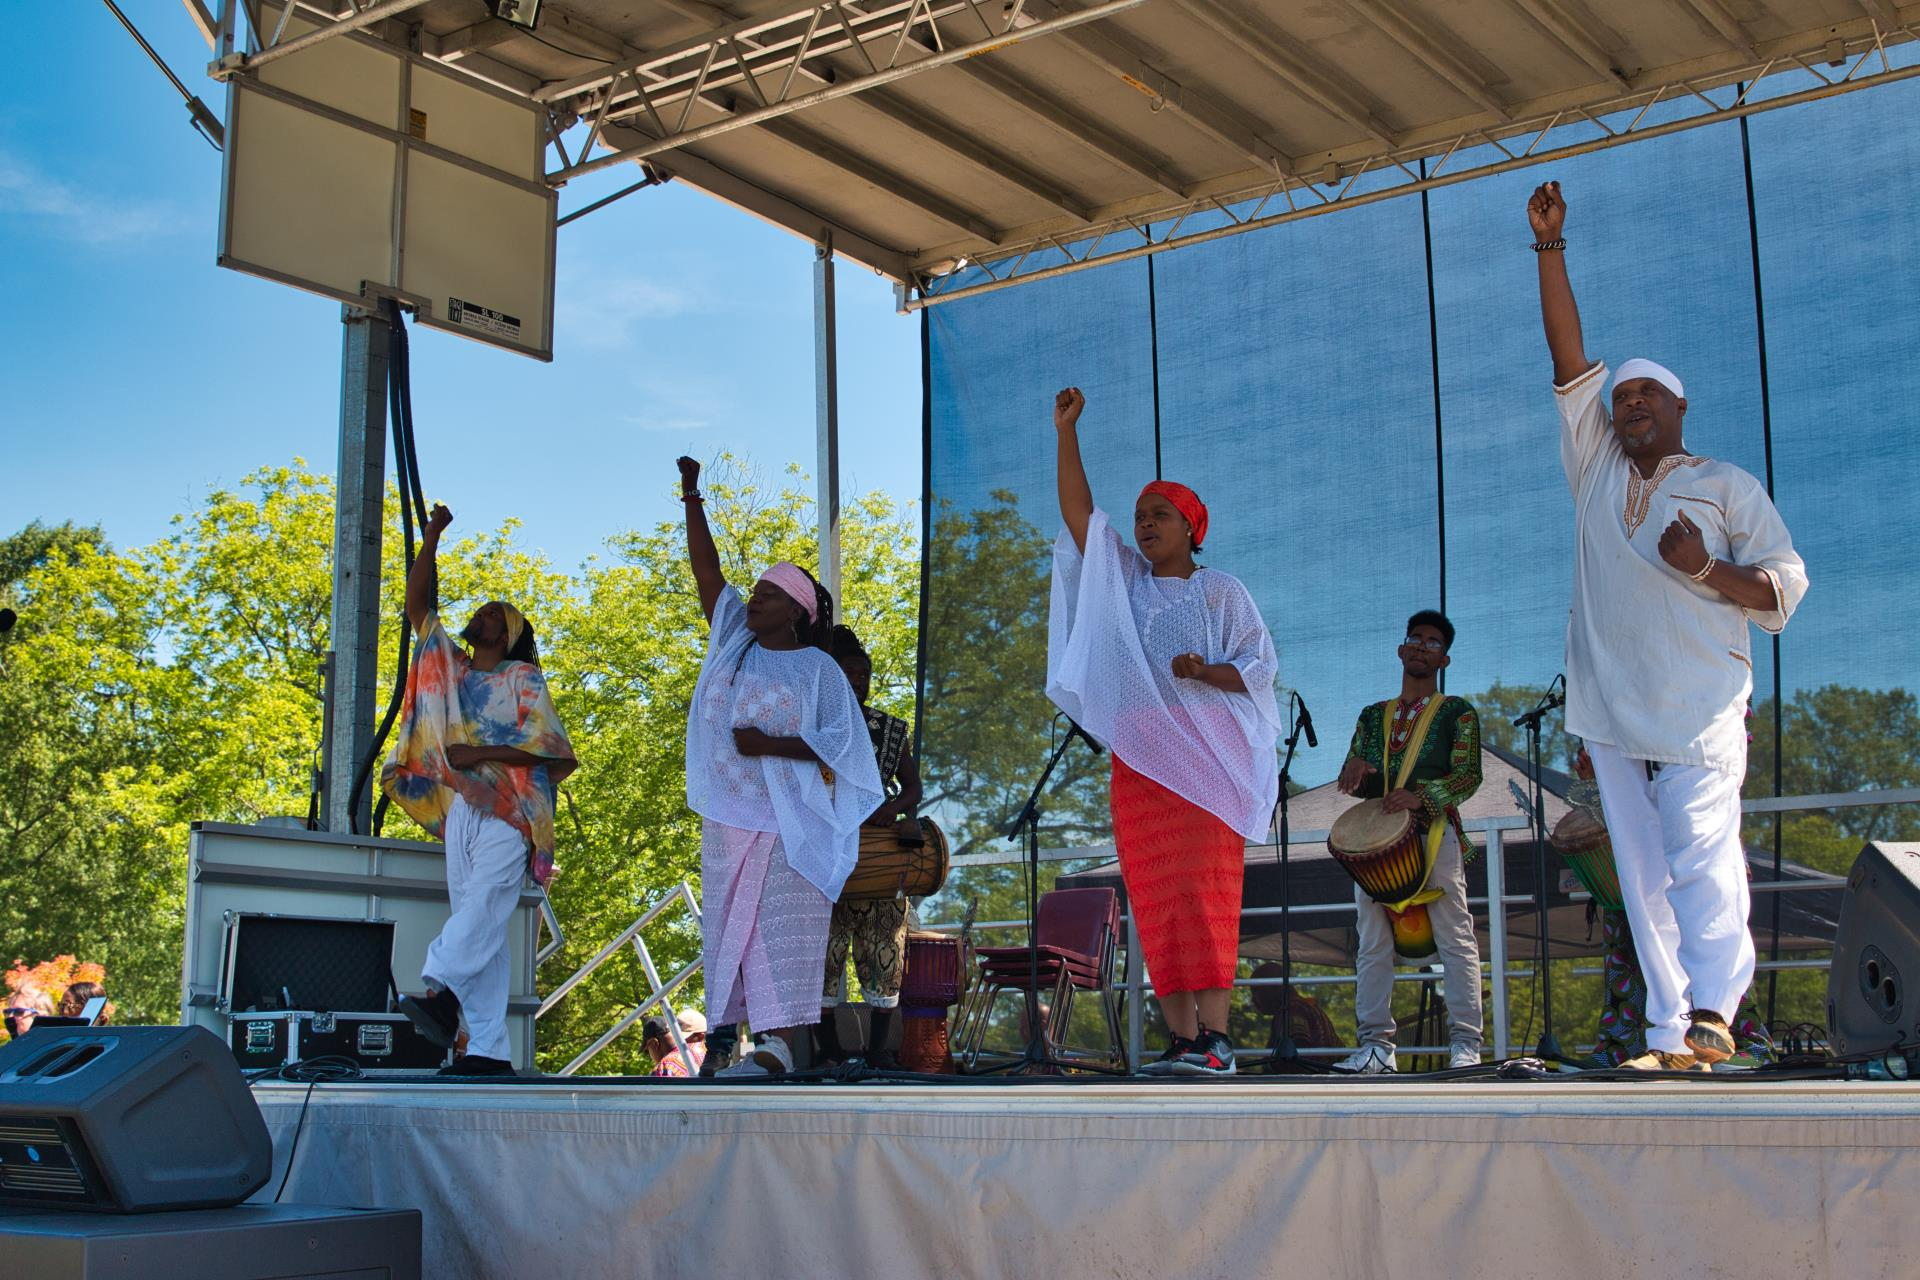 Stage celebrations at 2019 Cary Juneteenth Celebration